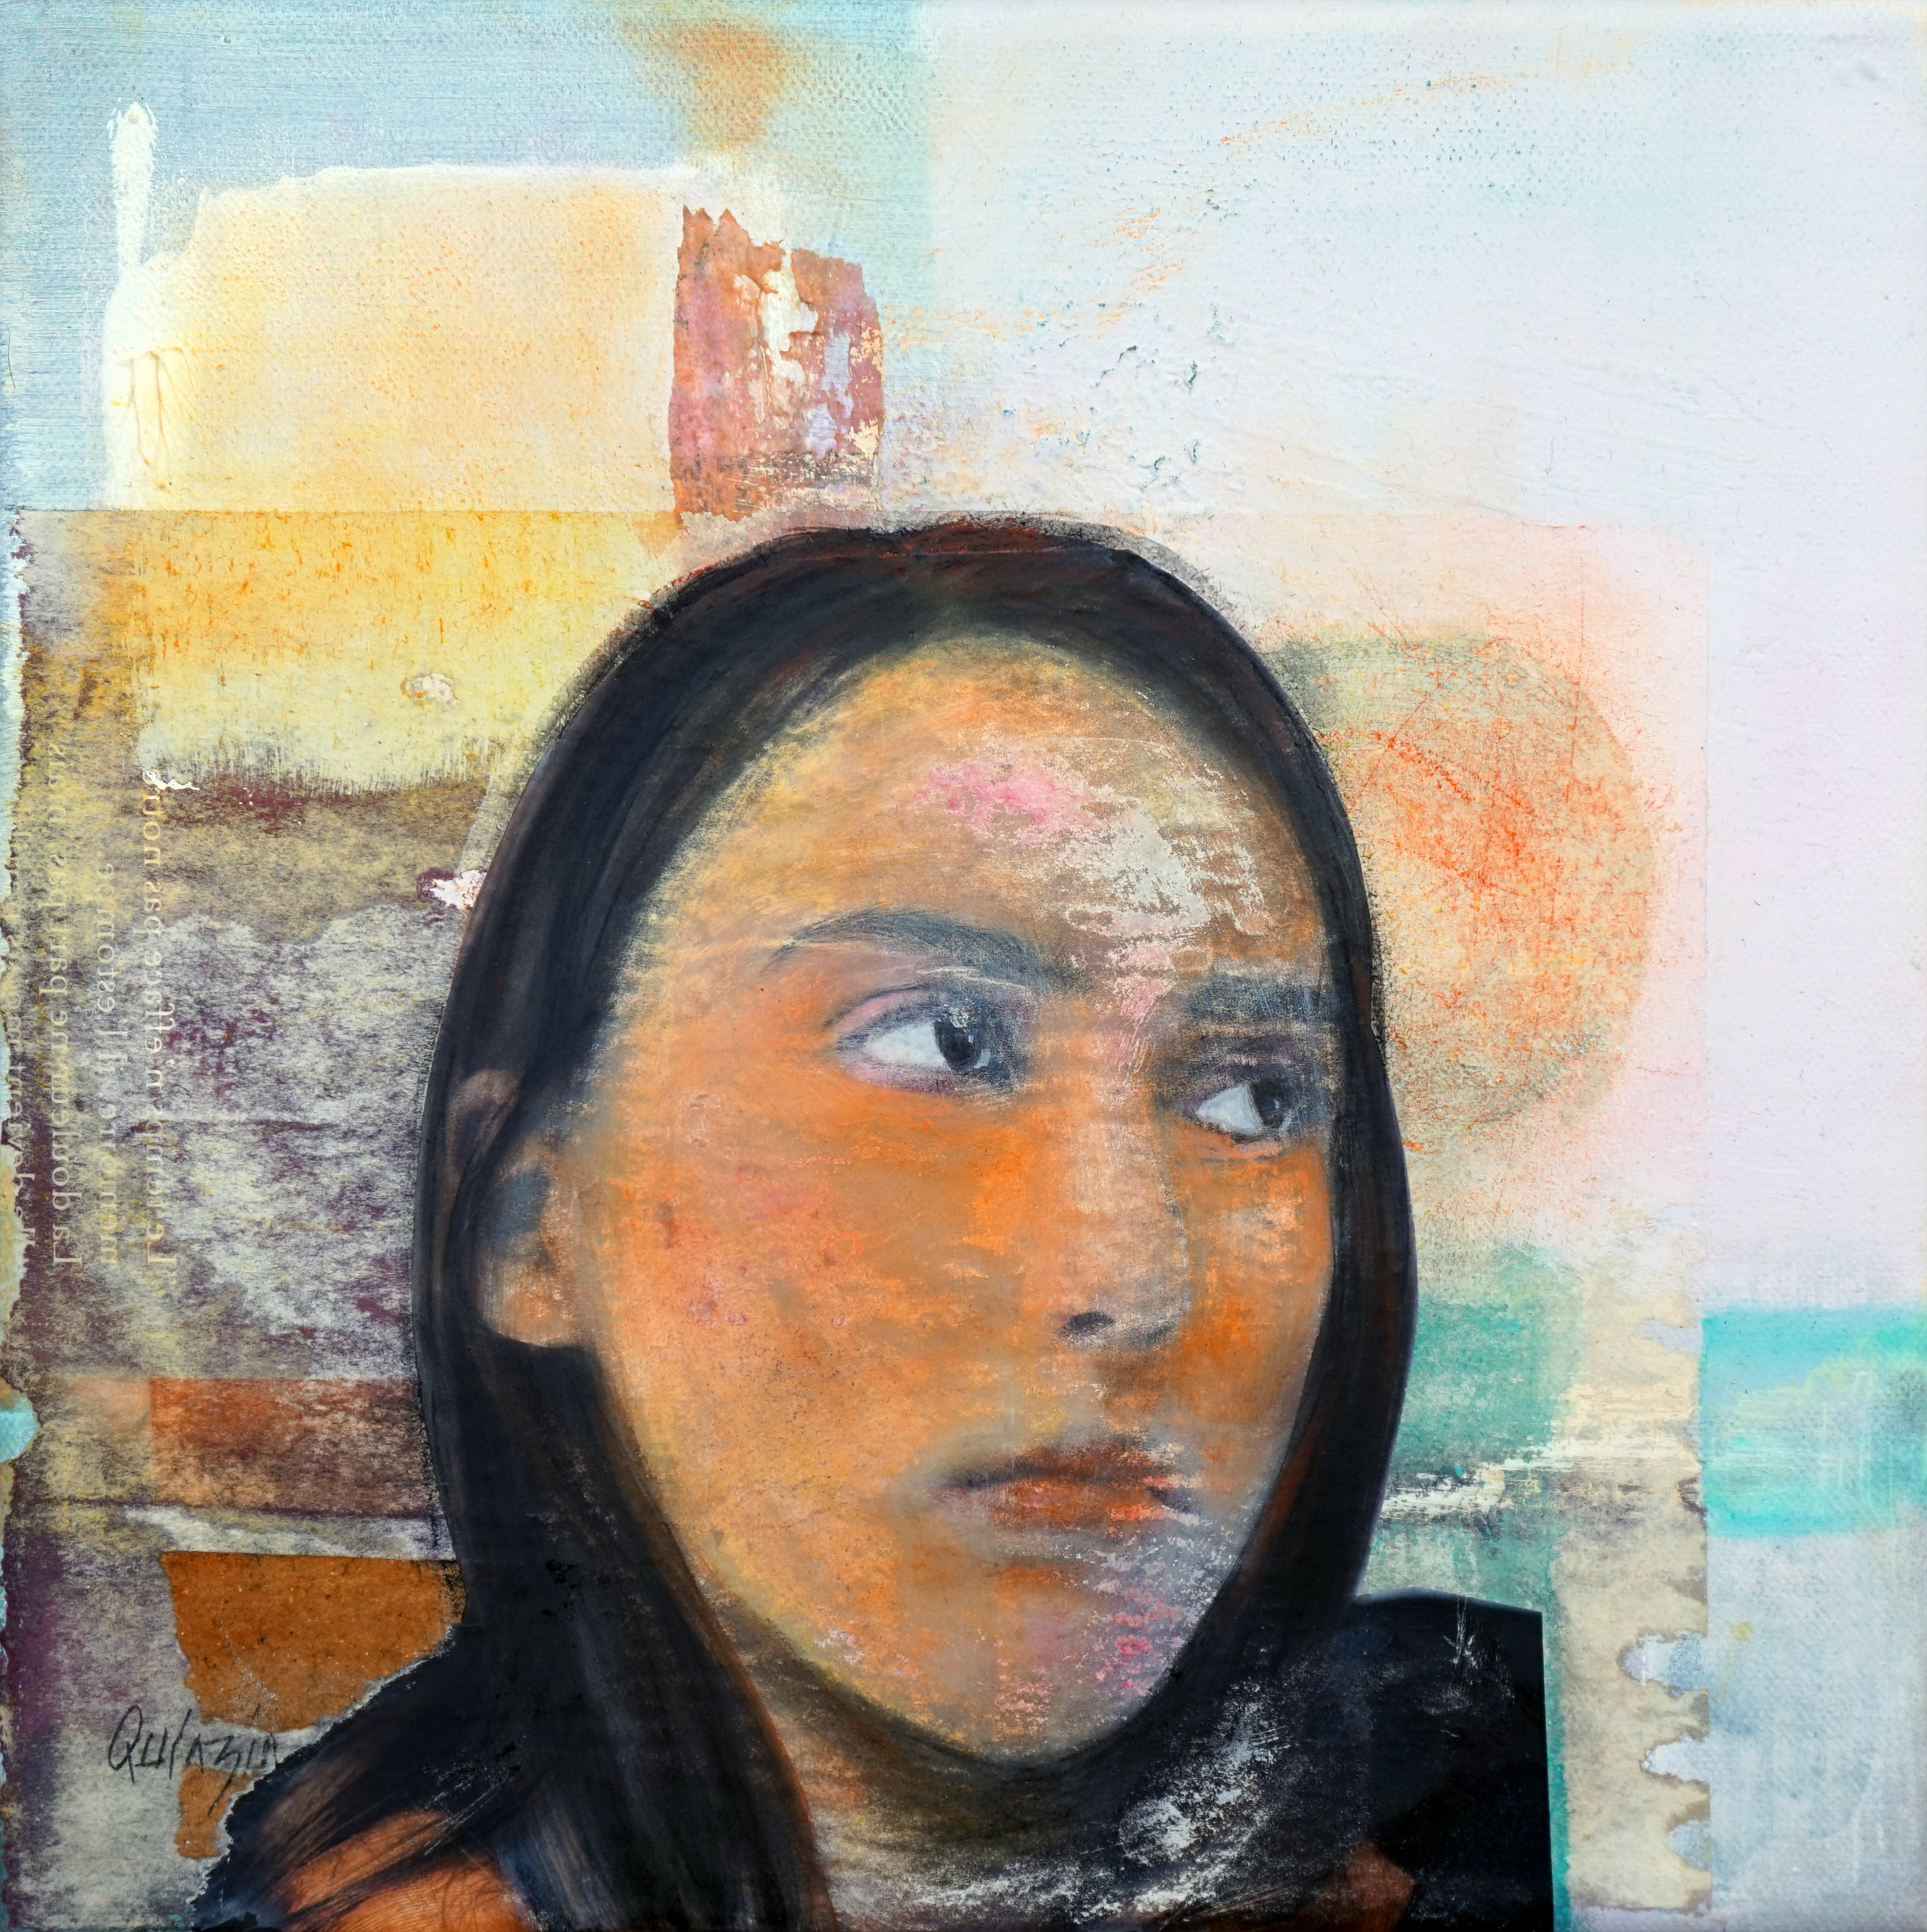 Marianne Quinzin, Camille (technique mixte, 2017)